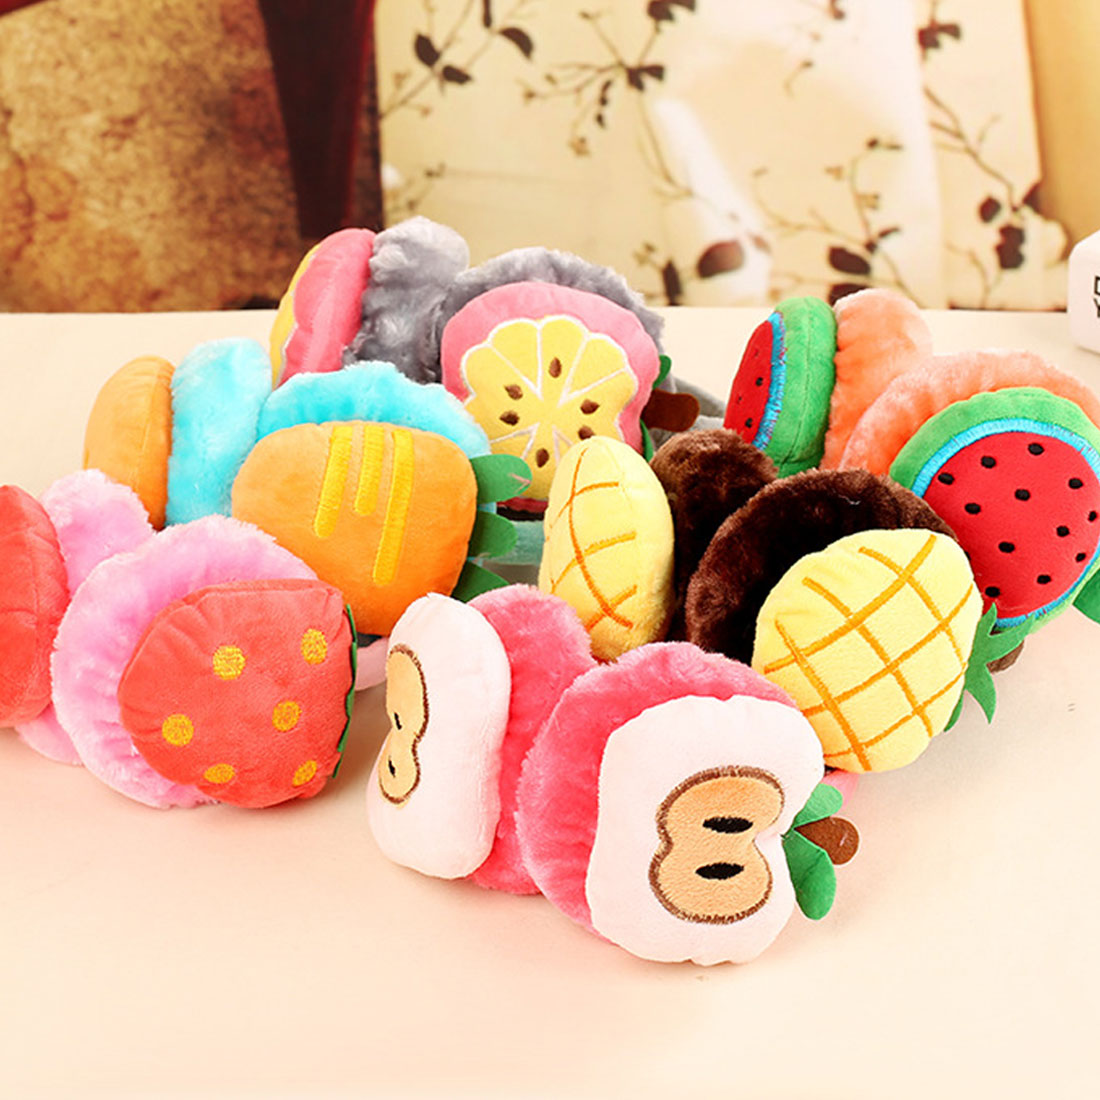 New Winter Warm Lovely Cartoon Plush Children Earmuffs Ear Fruit Series Watermelon Strawberry Thick Boys Girls Ear Muffs